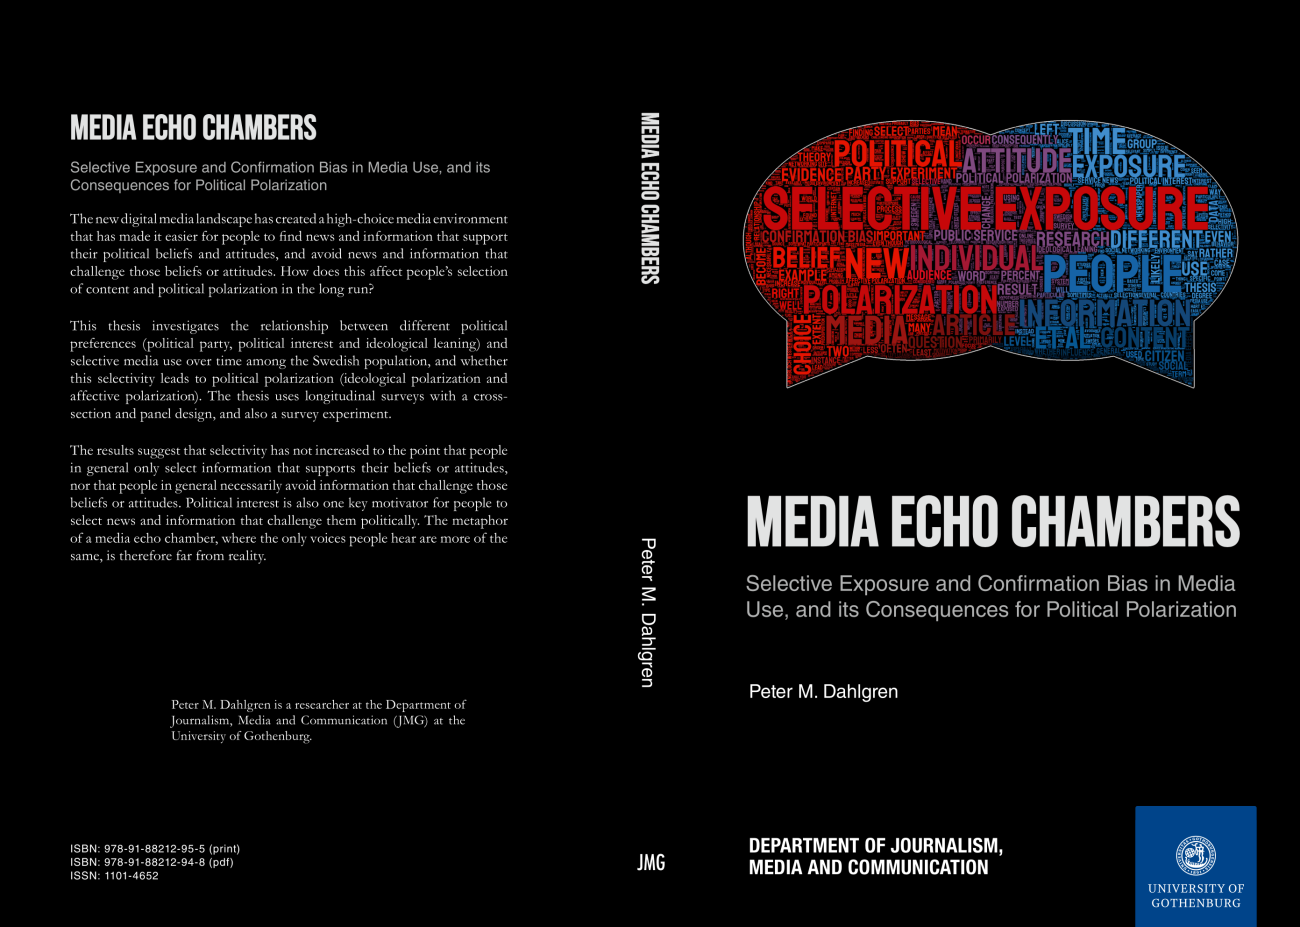 Media Echo Chambers: Selective Exposure and Confirmation Bias in Media Use, and its Consequence for Political Polarization